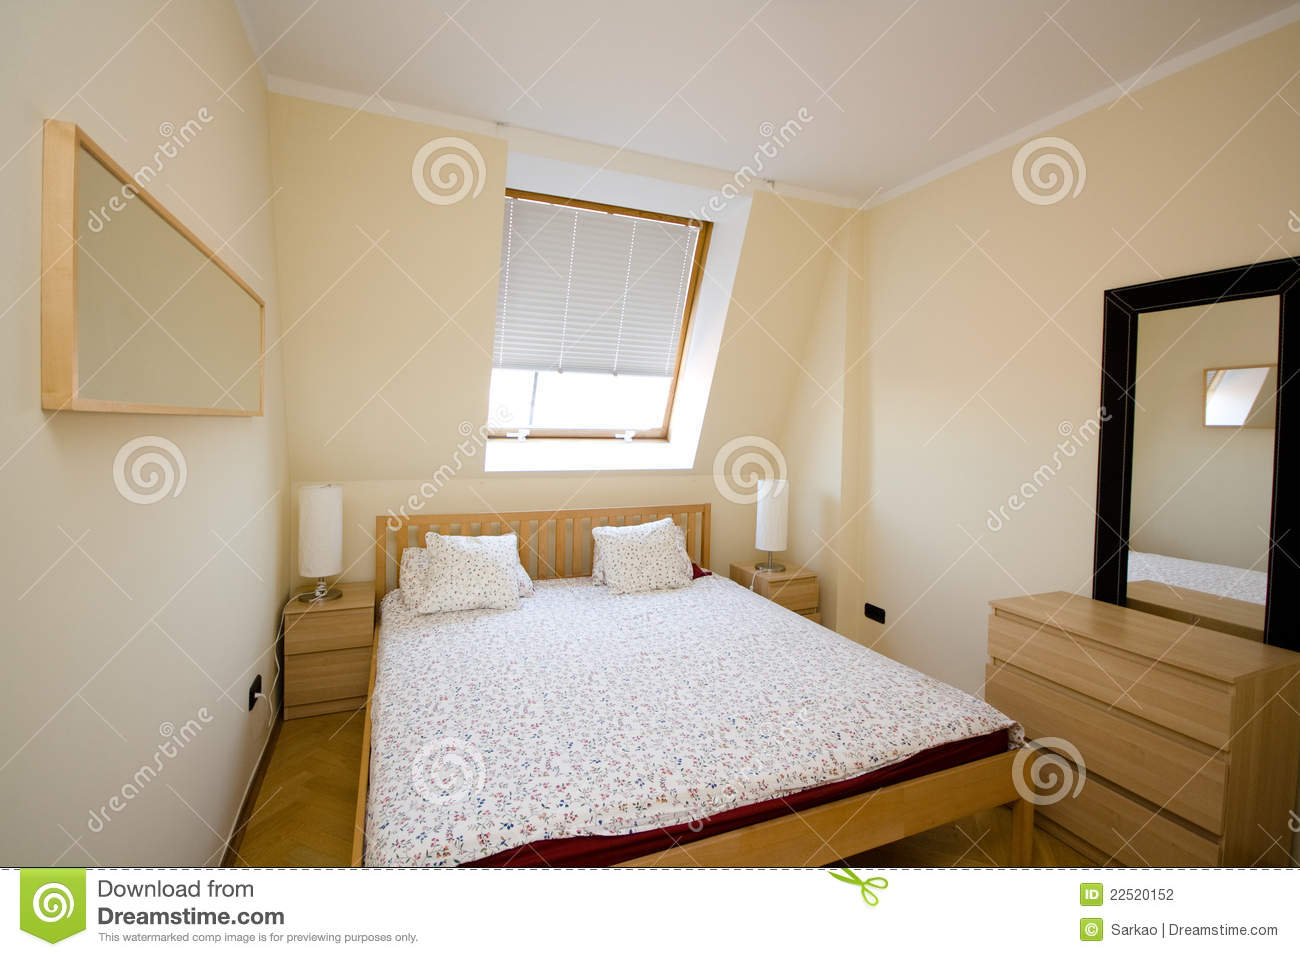 Simple bedroom  Simple Bedroom Stock Photography Image 22520152. Simple Bedroom